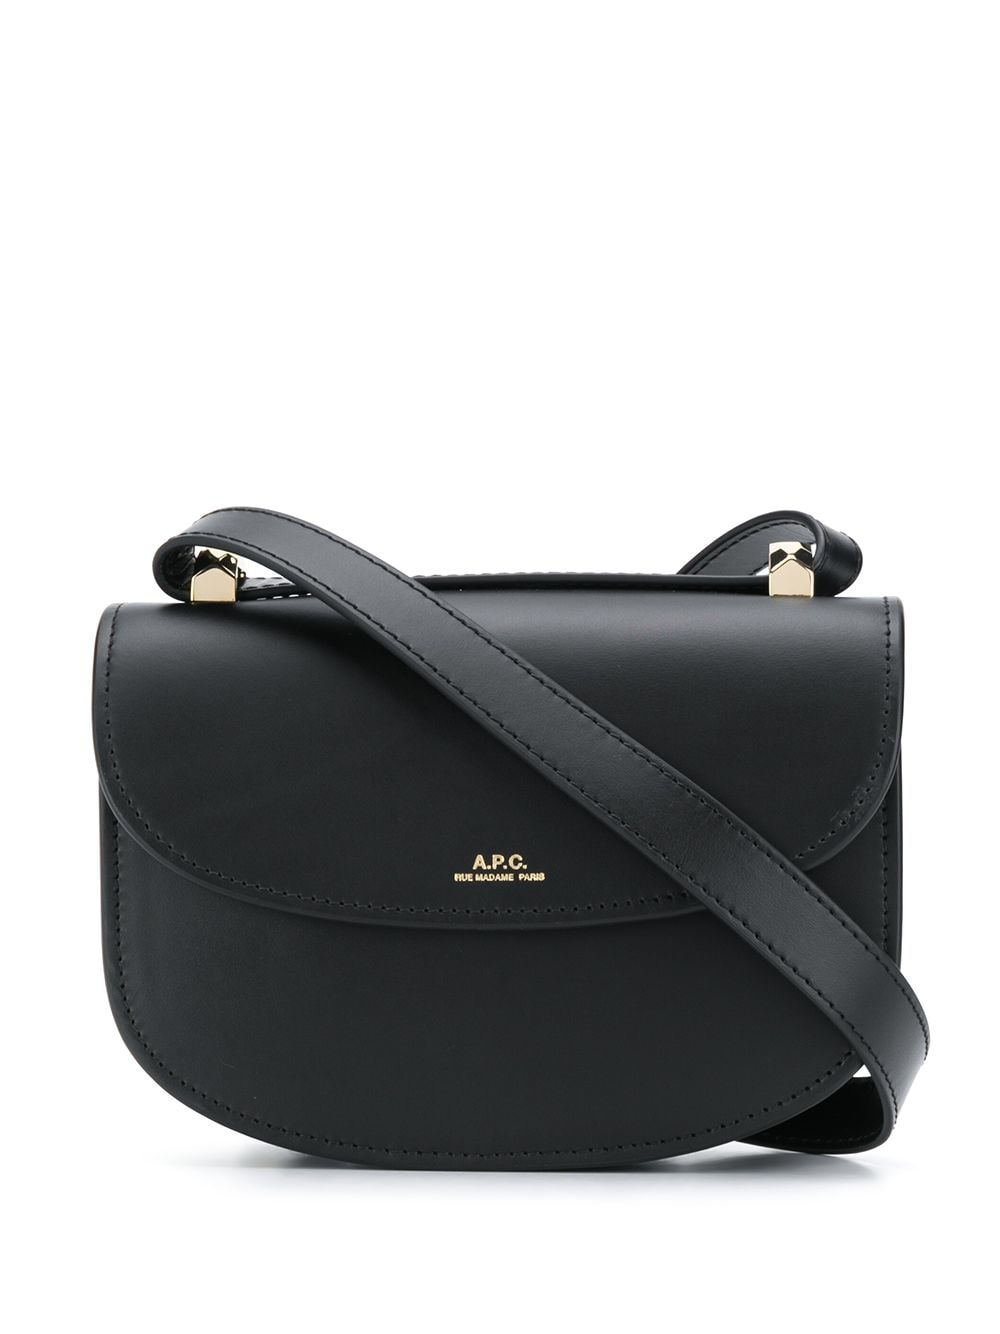 <p class='small-title'>A.P.C.</p>A.P.C. Geneve Shoulder Bag